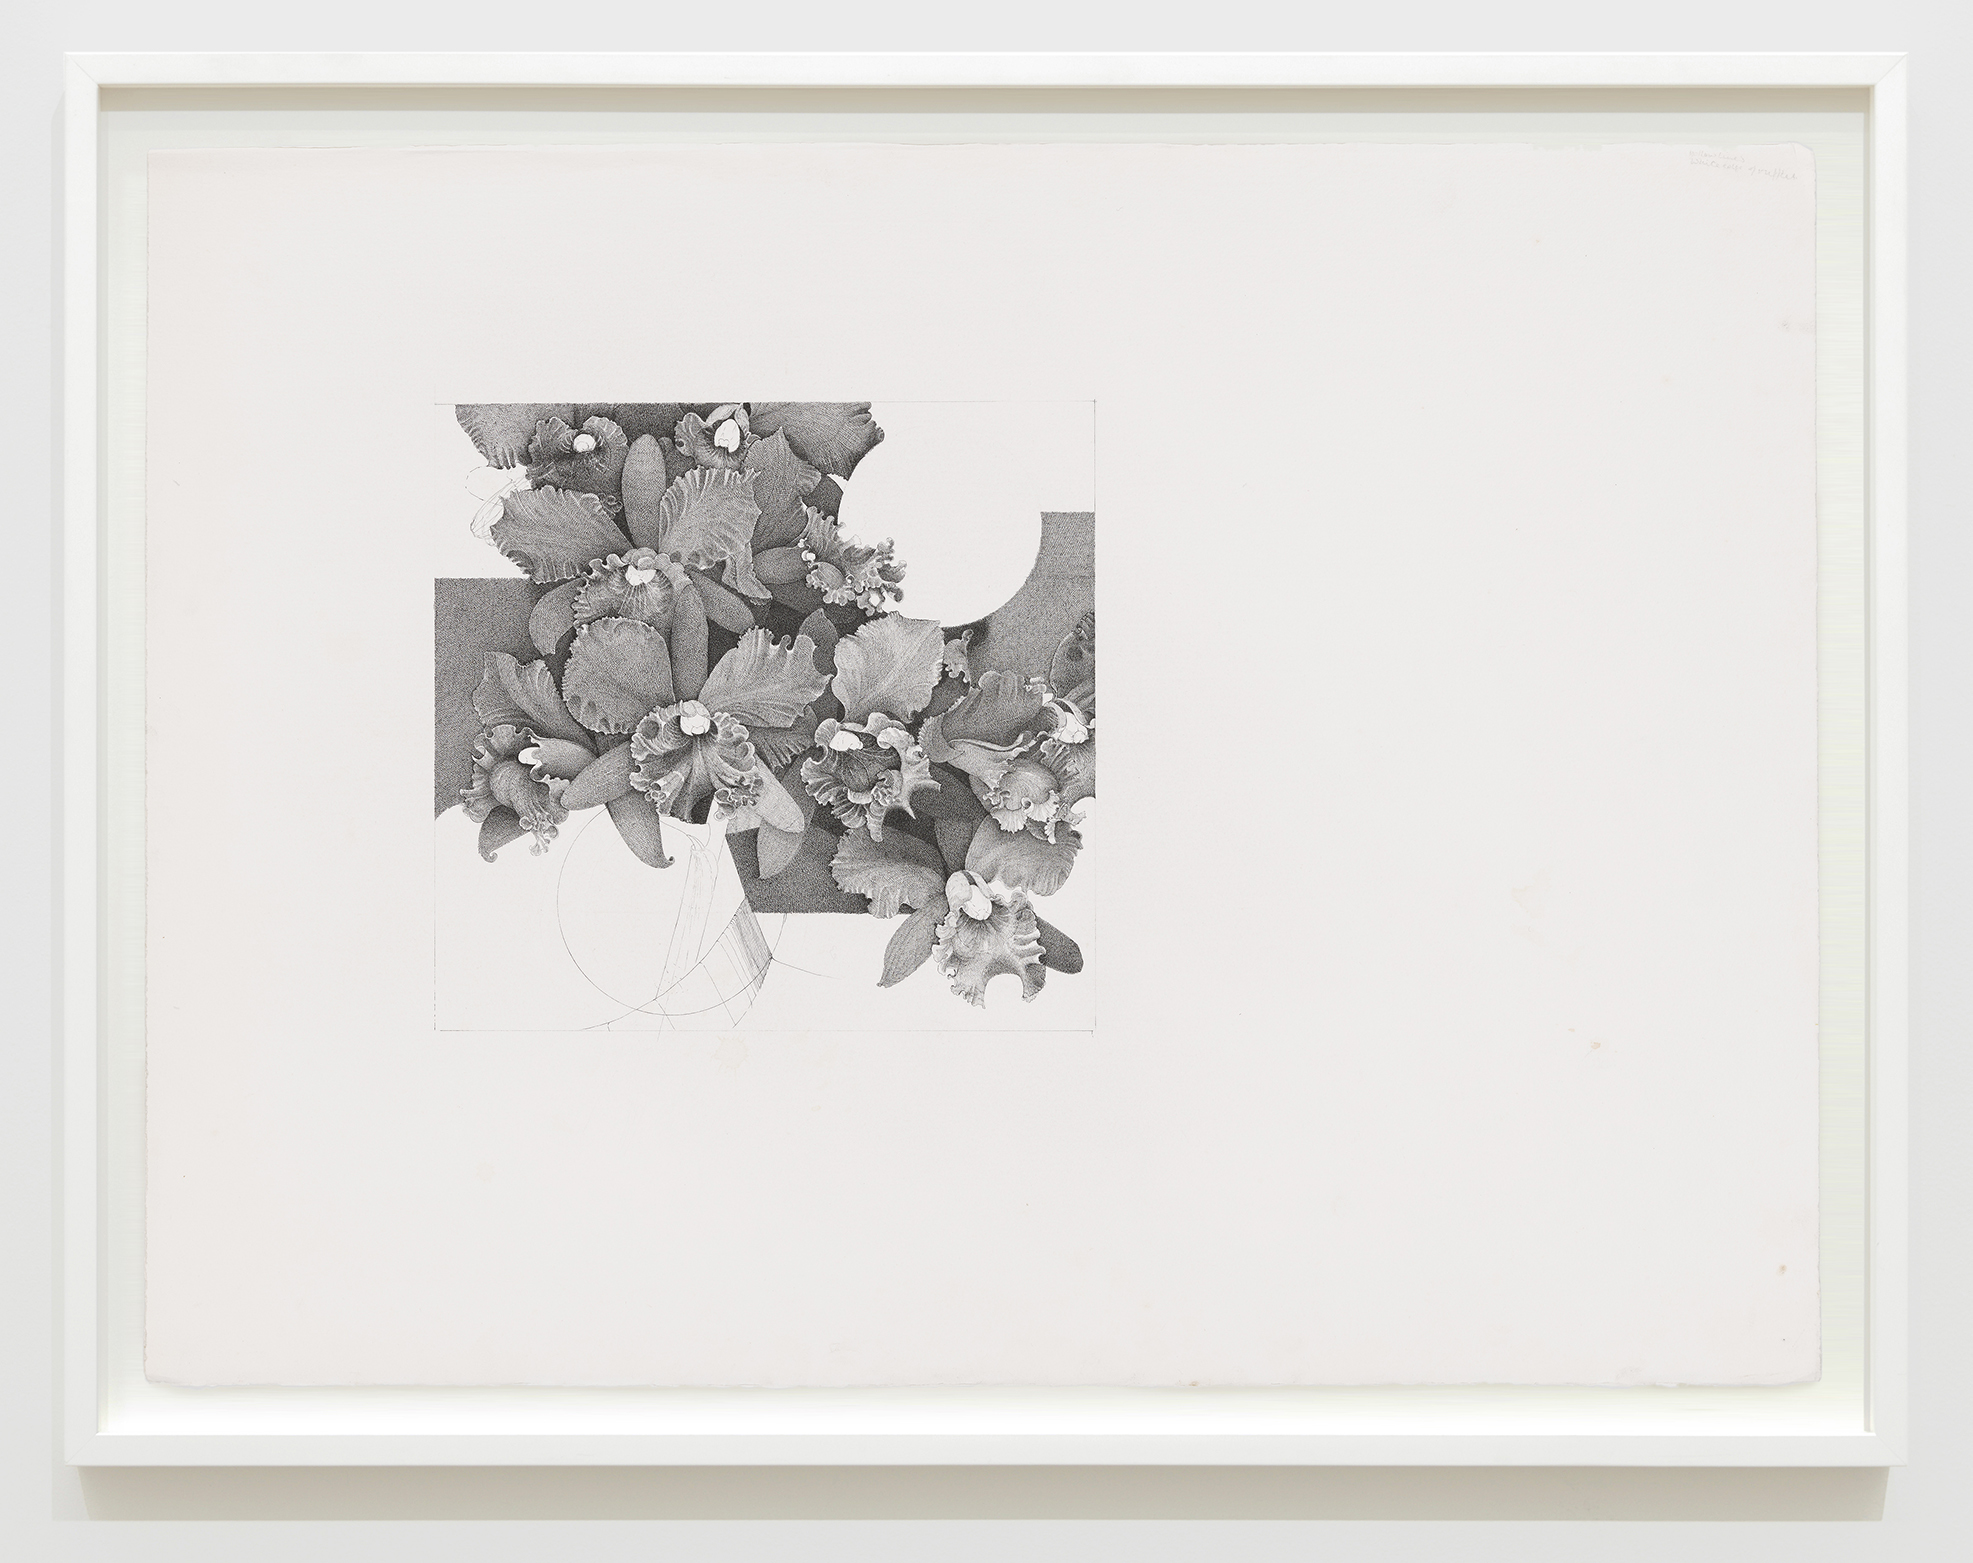 Charmian Johnson, Yellow lilies, white edge of ruffles, unknown date, ink on paper, 26 x 34 in. (65 x 85 cm) by